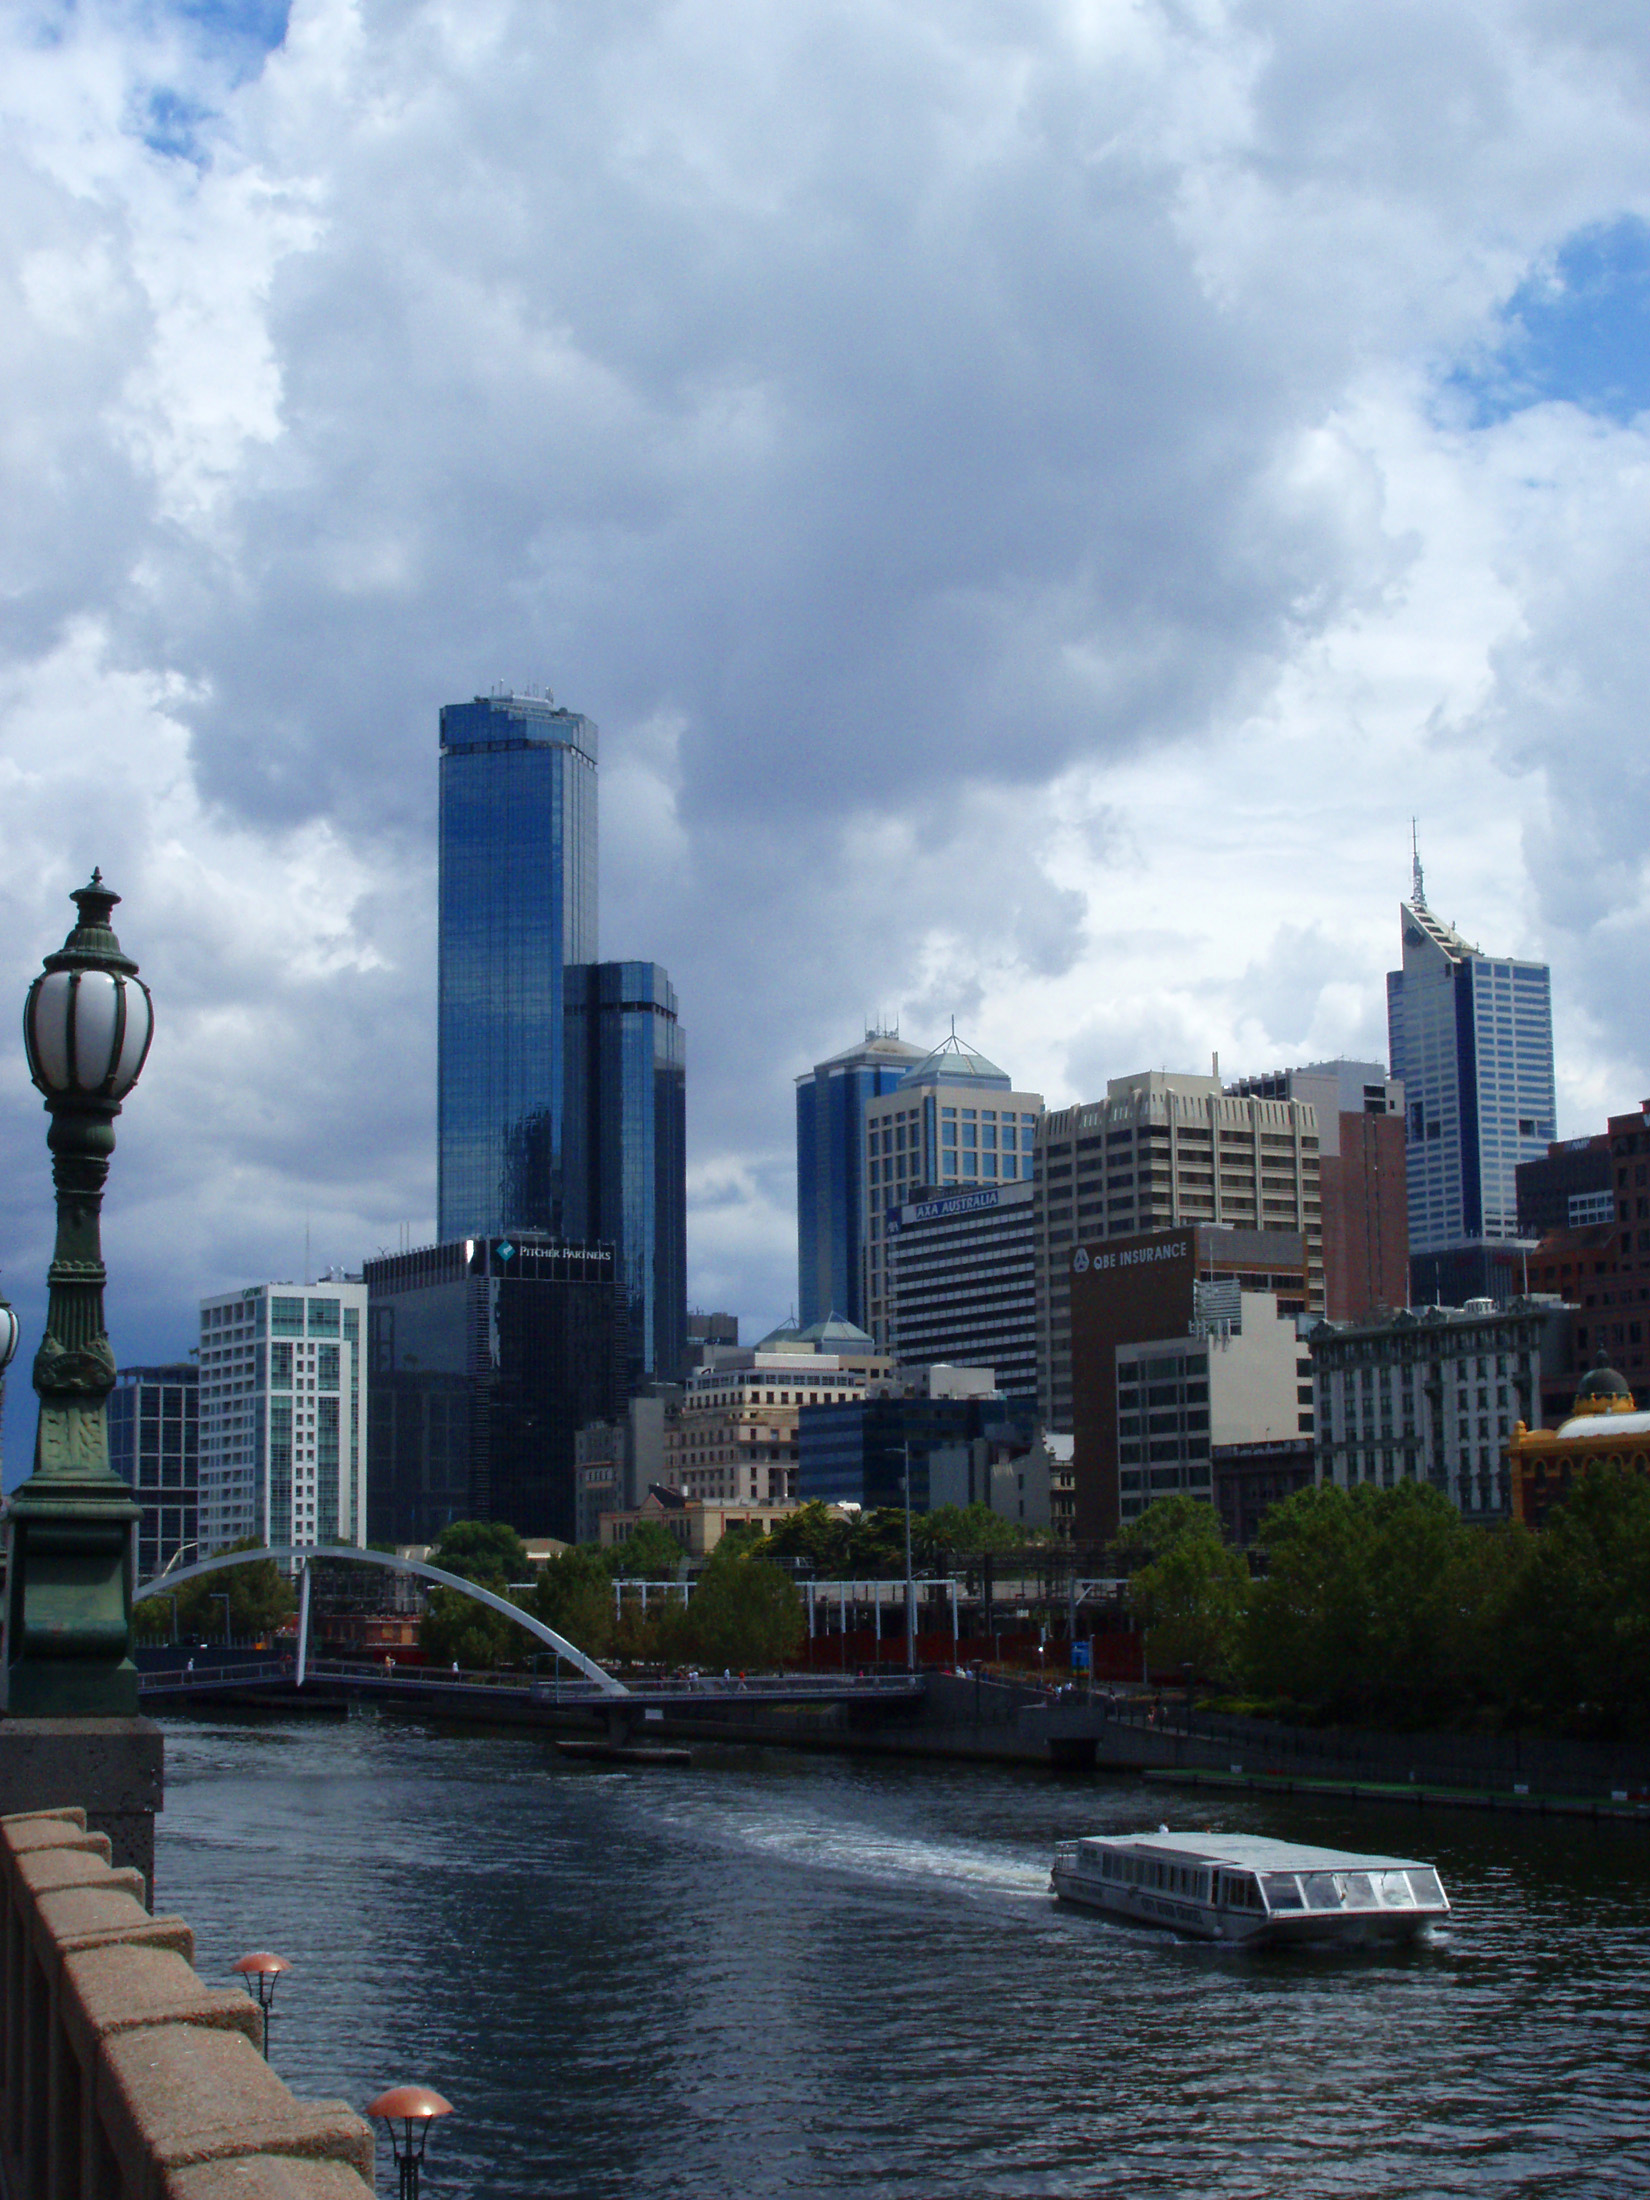 City View in Melbourne Australia with Yarra River Cruise and High Rise Buildings.